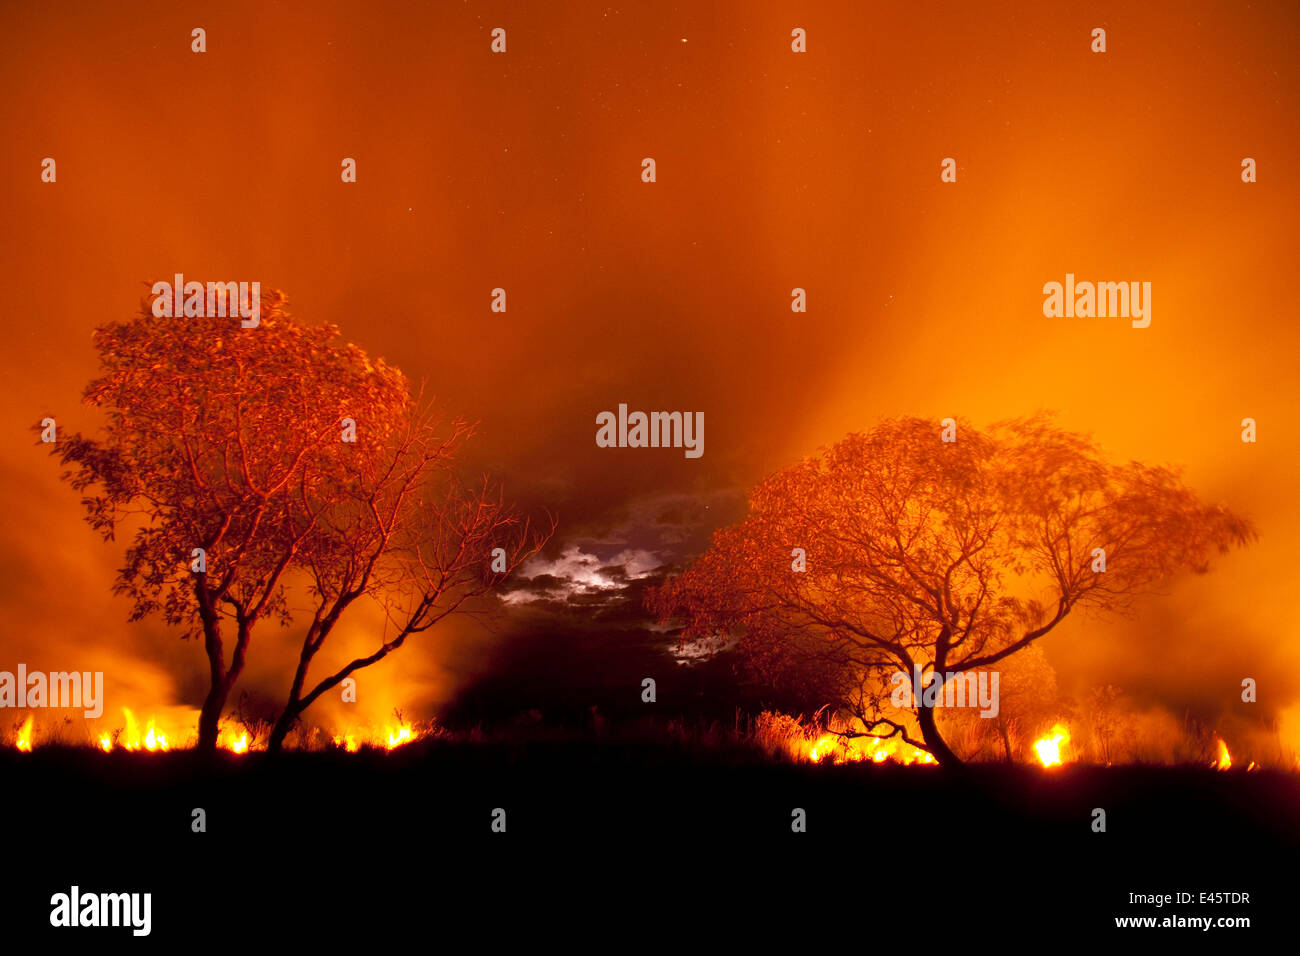 Grass fire at night in Pantanal, Brazil. - Stock Image